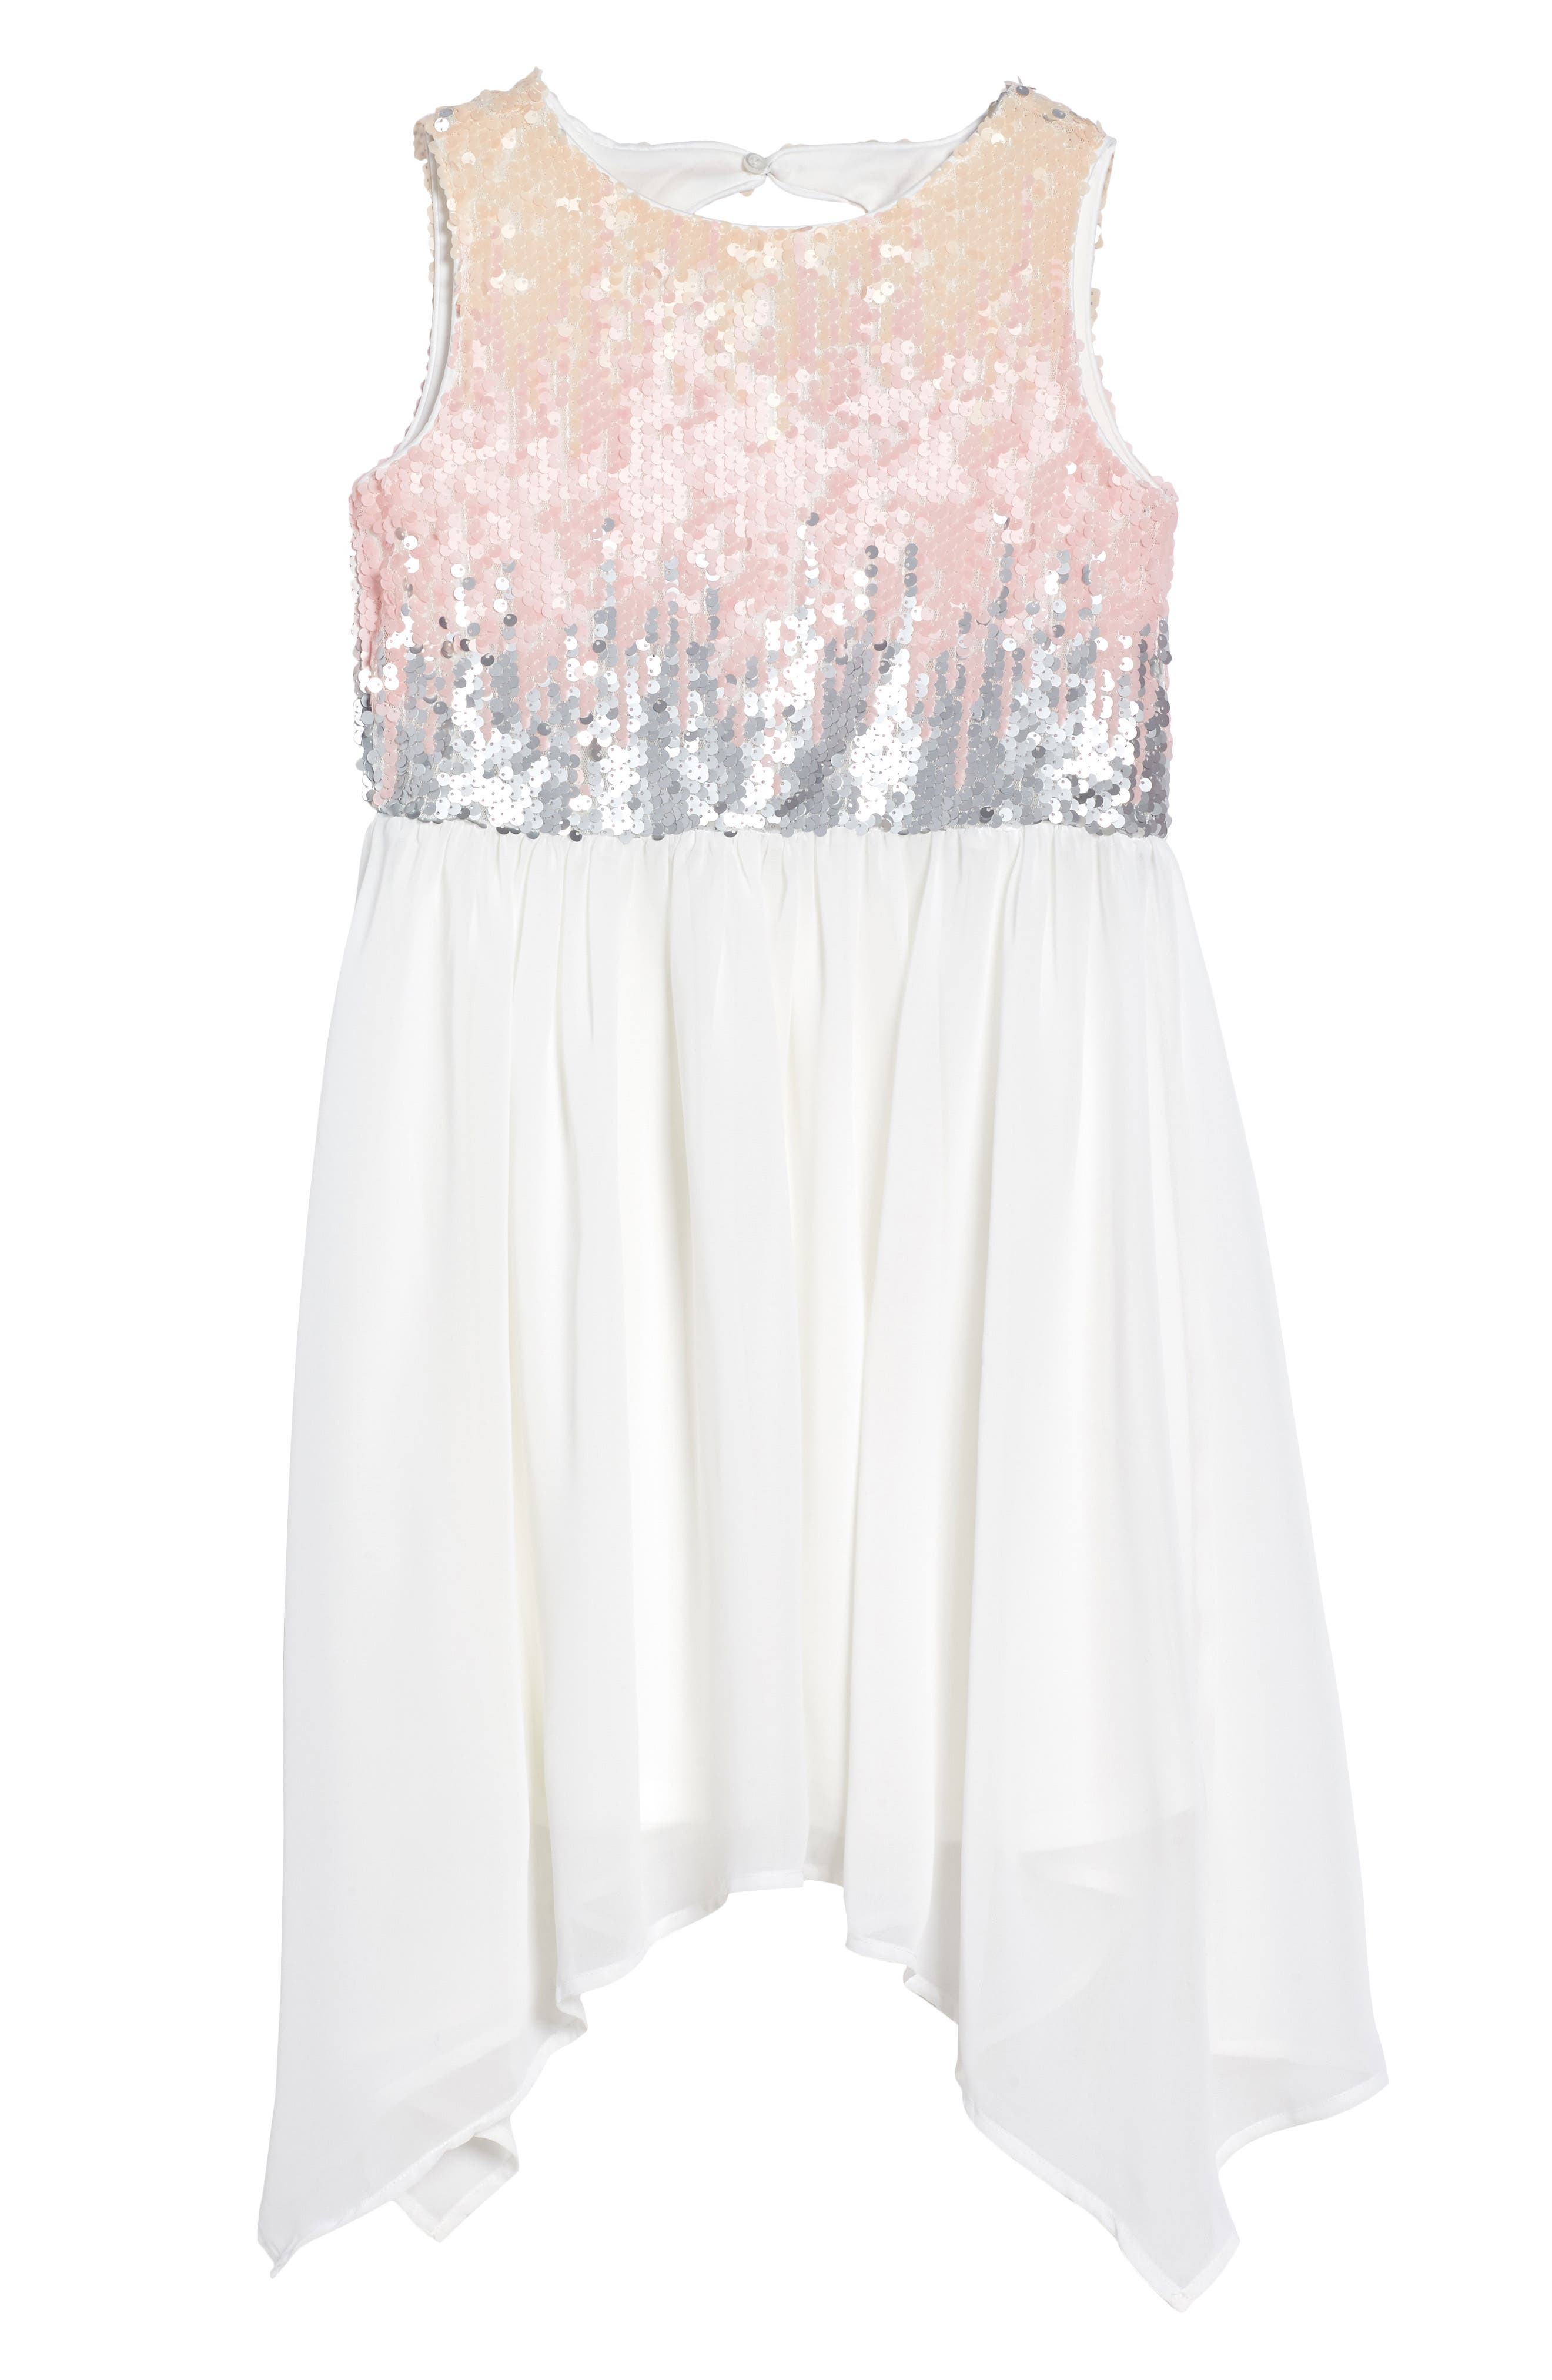 BLUSH by US Angels Sequin Bodice Dress (Big Girls)